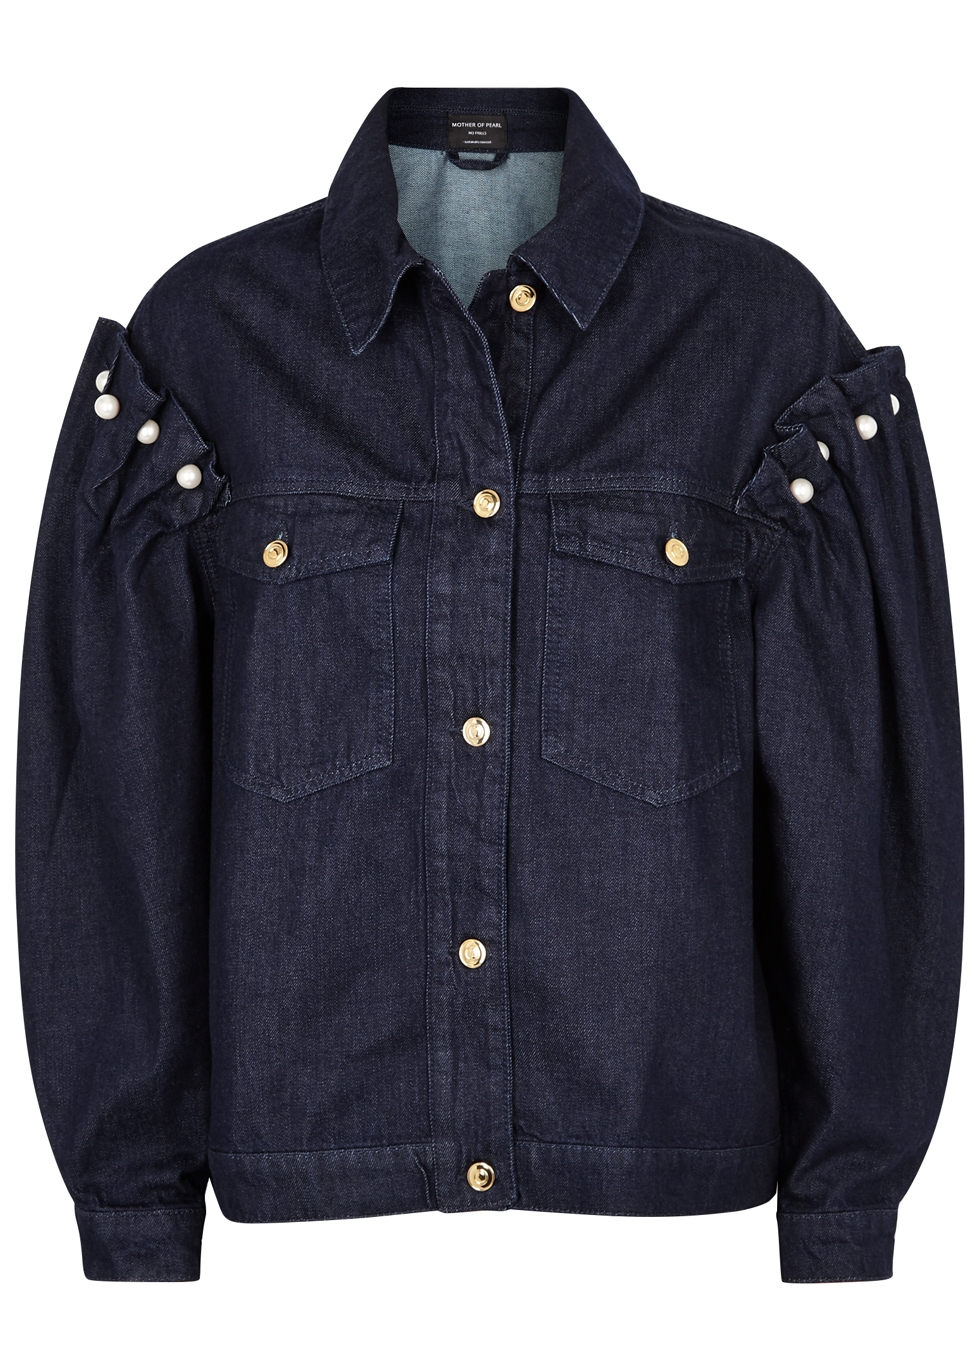 MOTHER OF PEARL INDIGO OVERSIZED DENIM JACKET